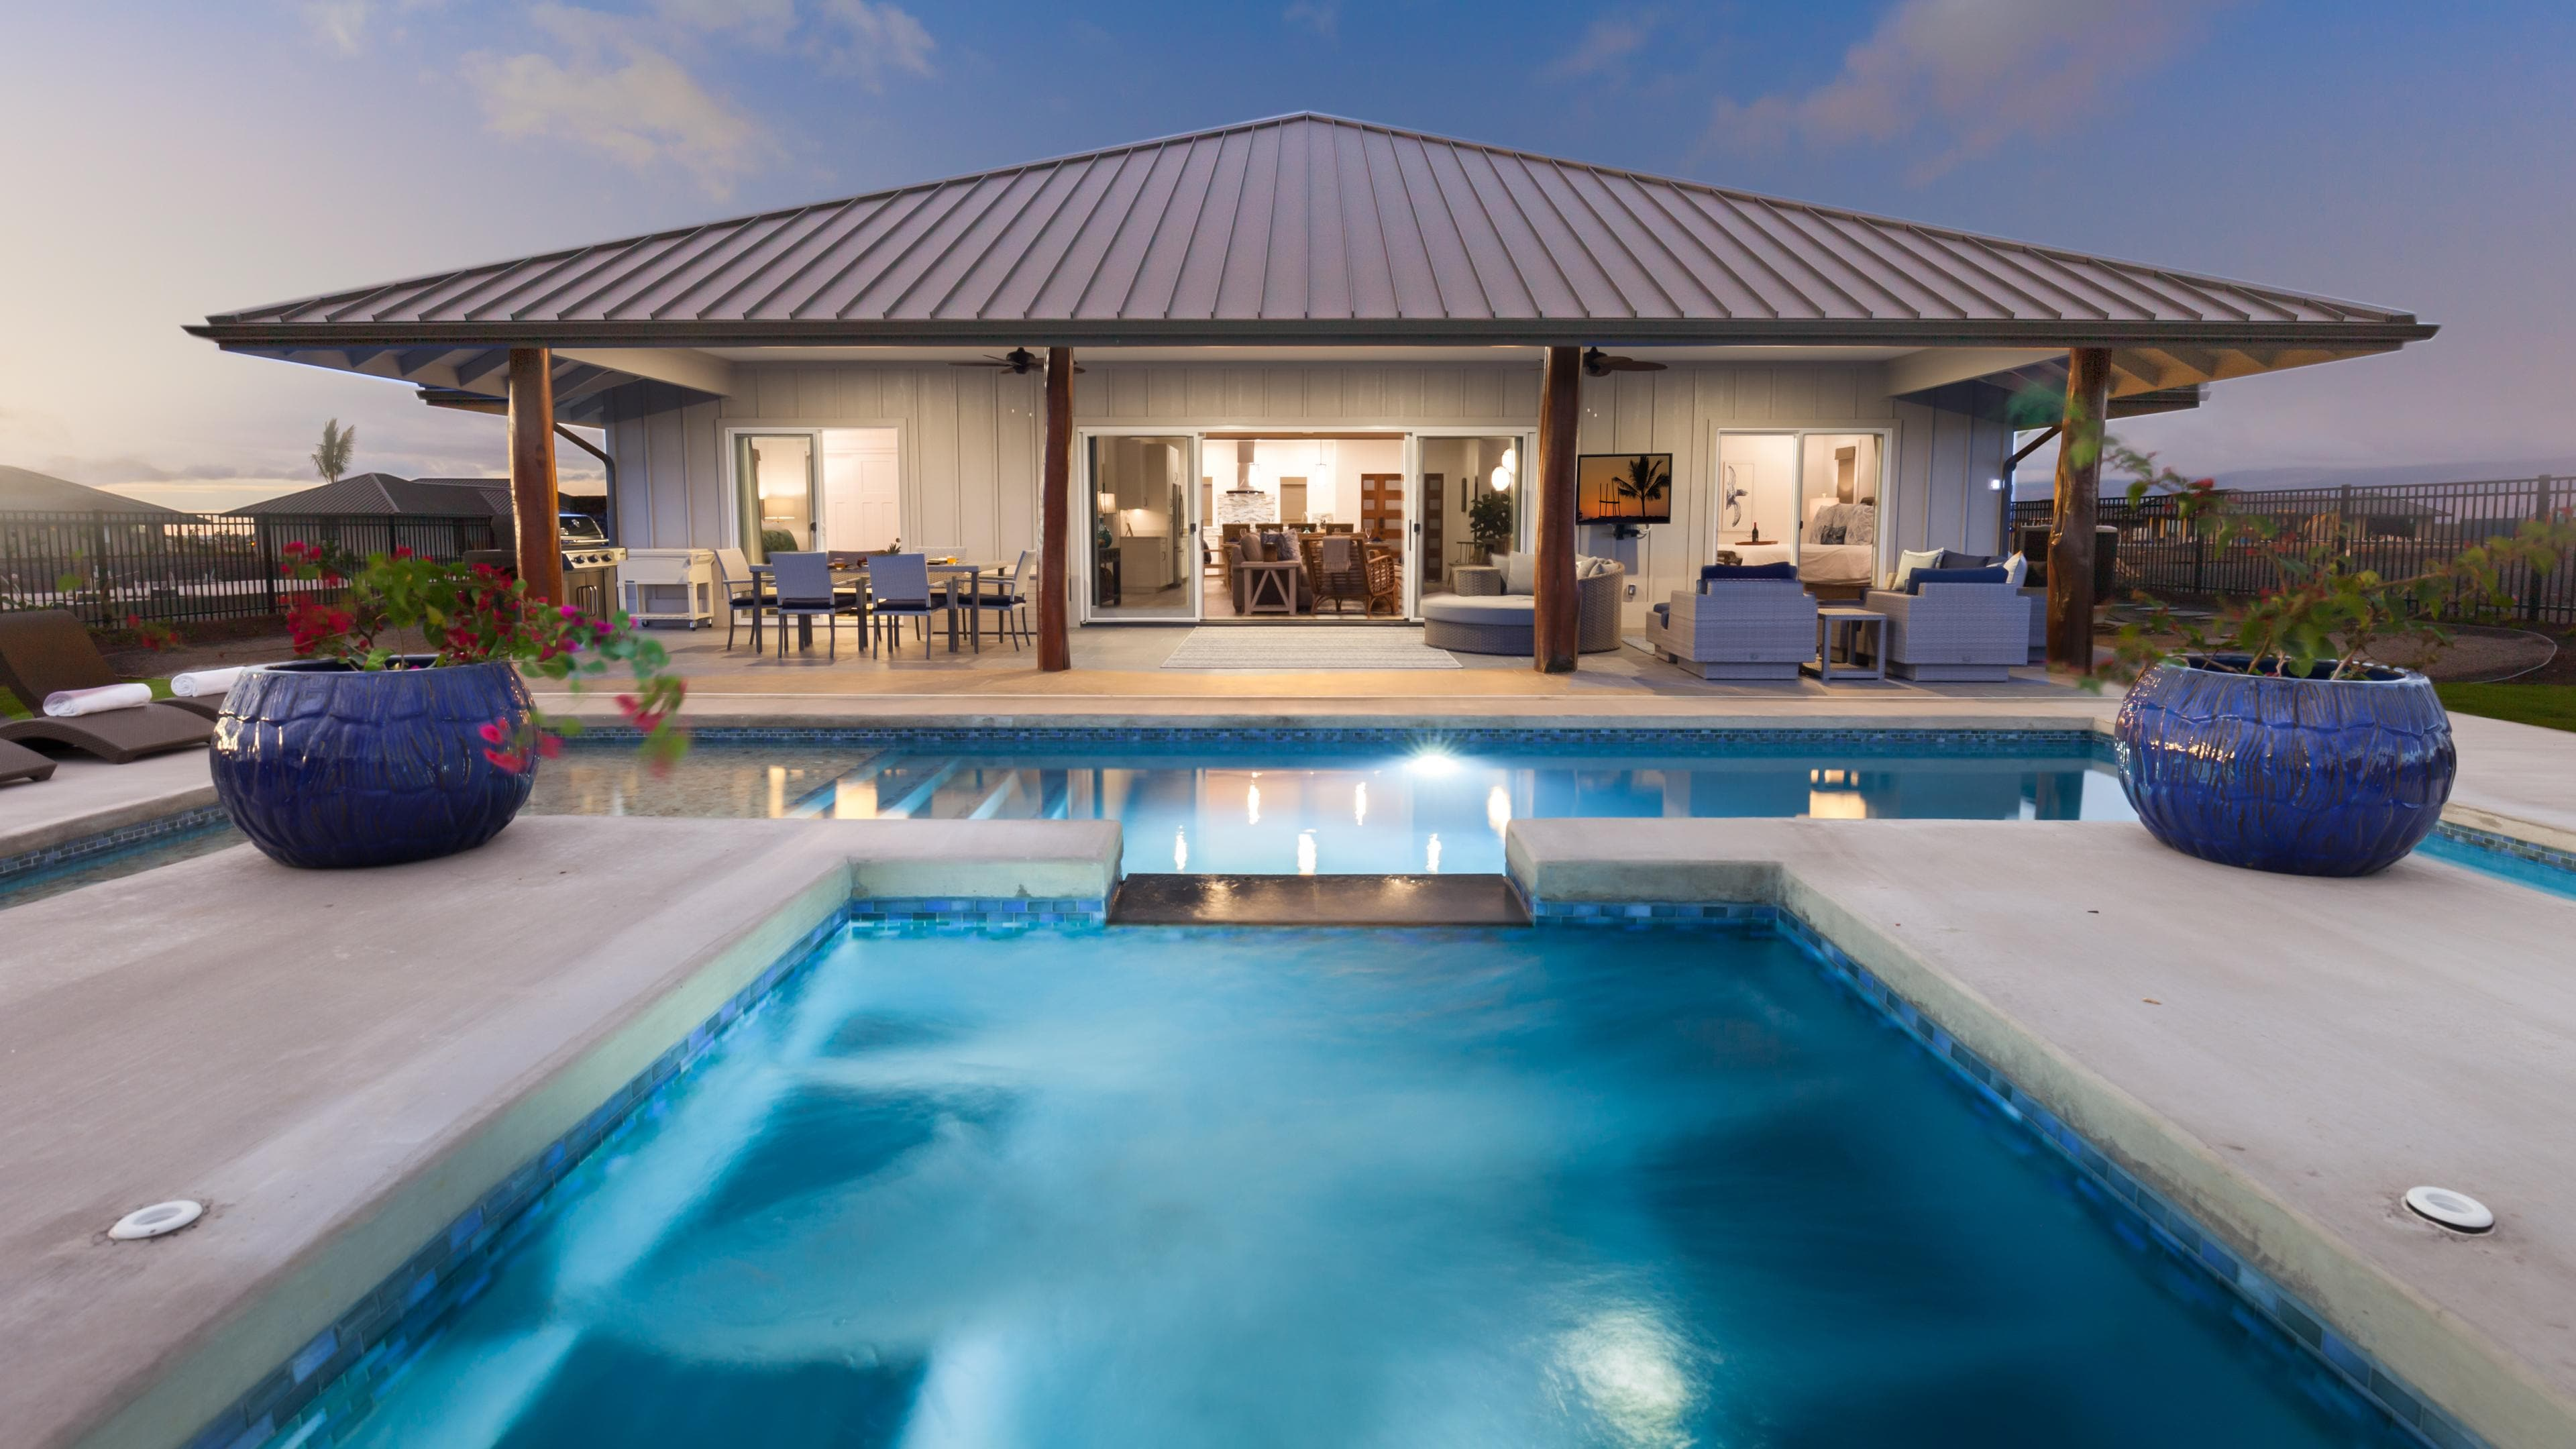 Large lanai with outdoor dining and living by the pool